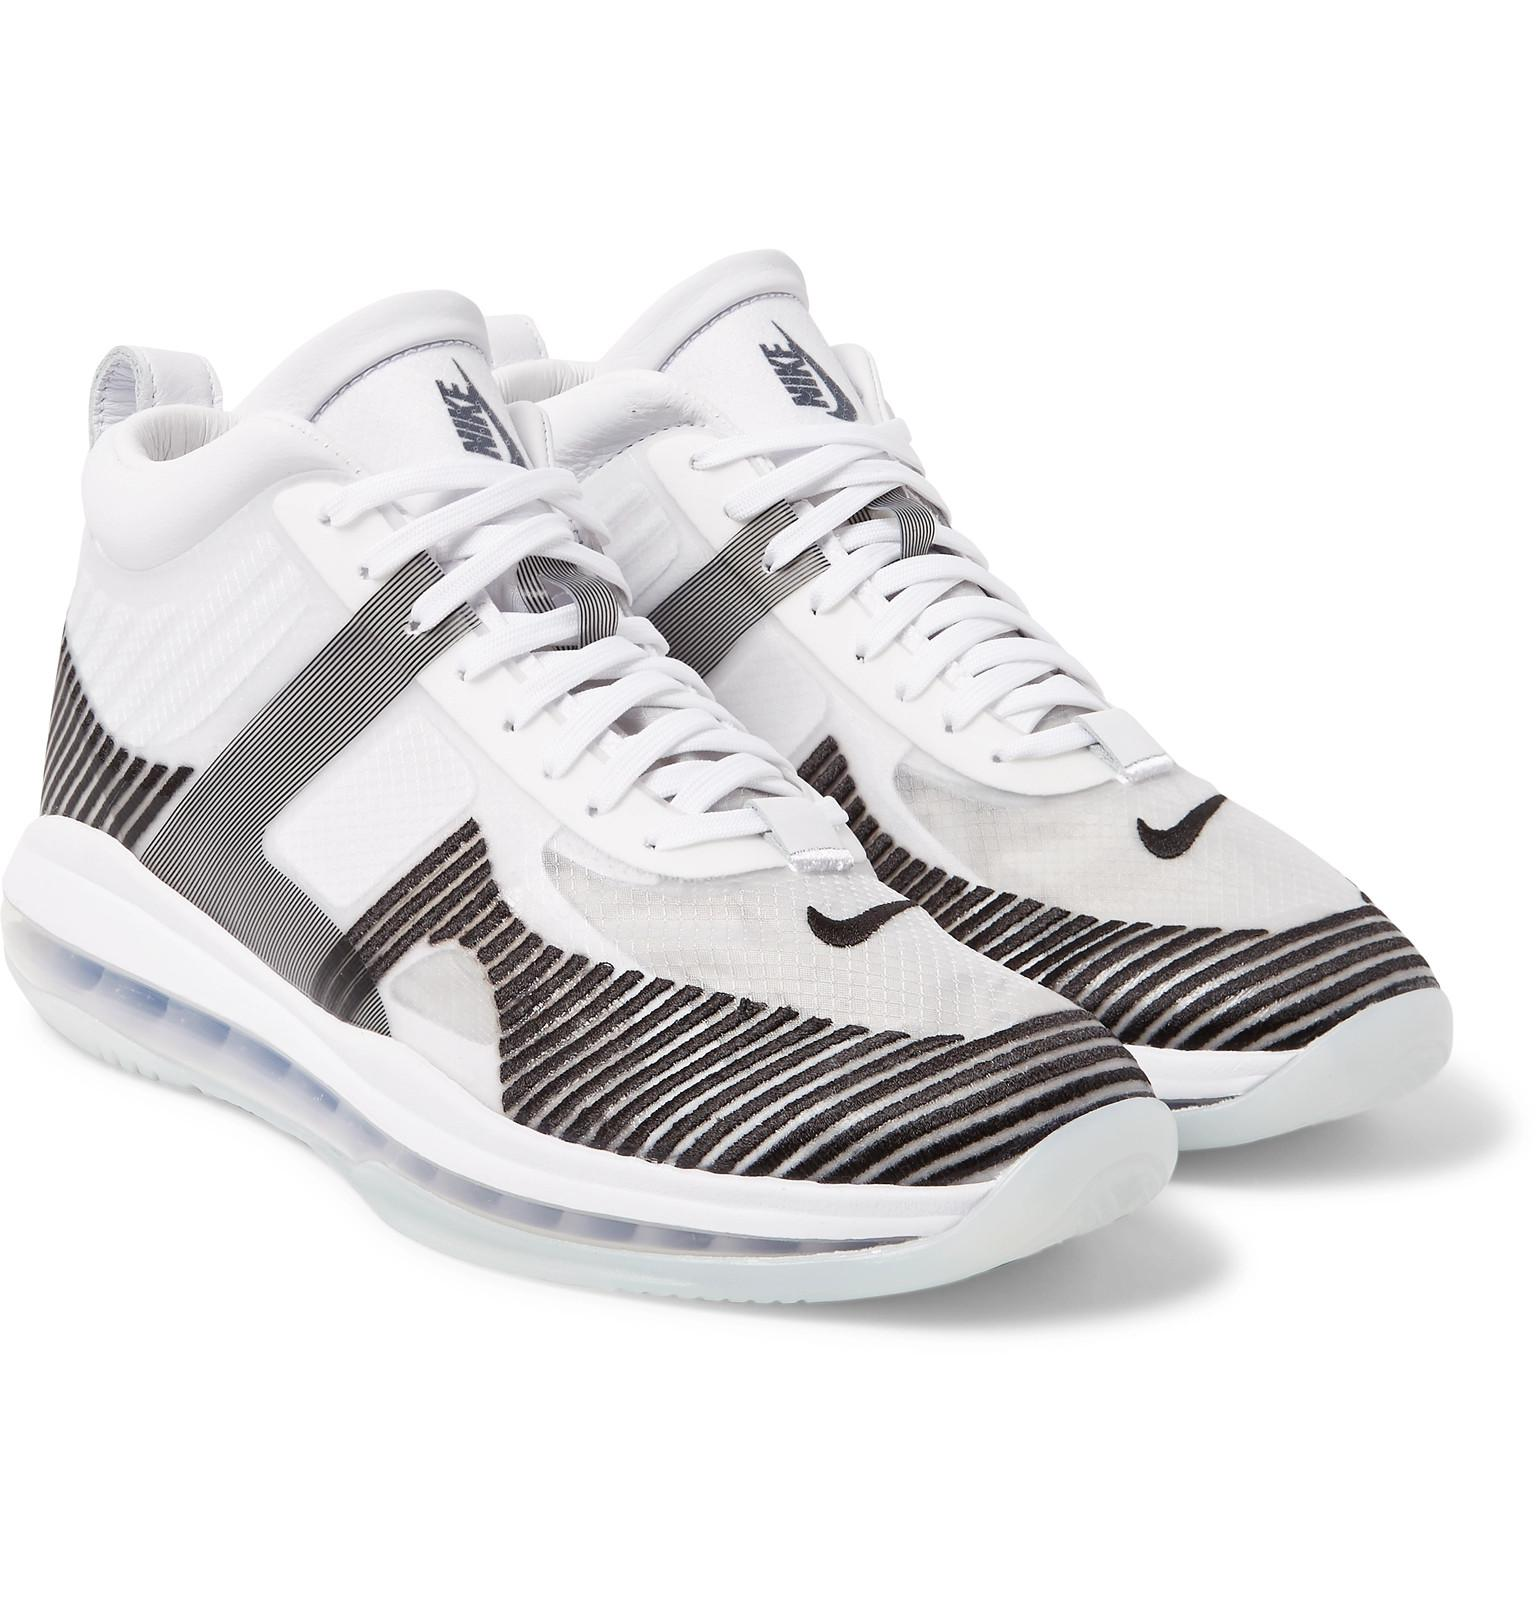 quality design 4c640 2d29a Nike + Lebron James X John Elliott Icon Qs High-top Sneakers in ...